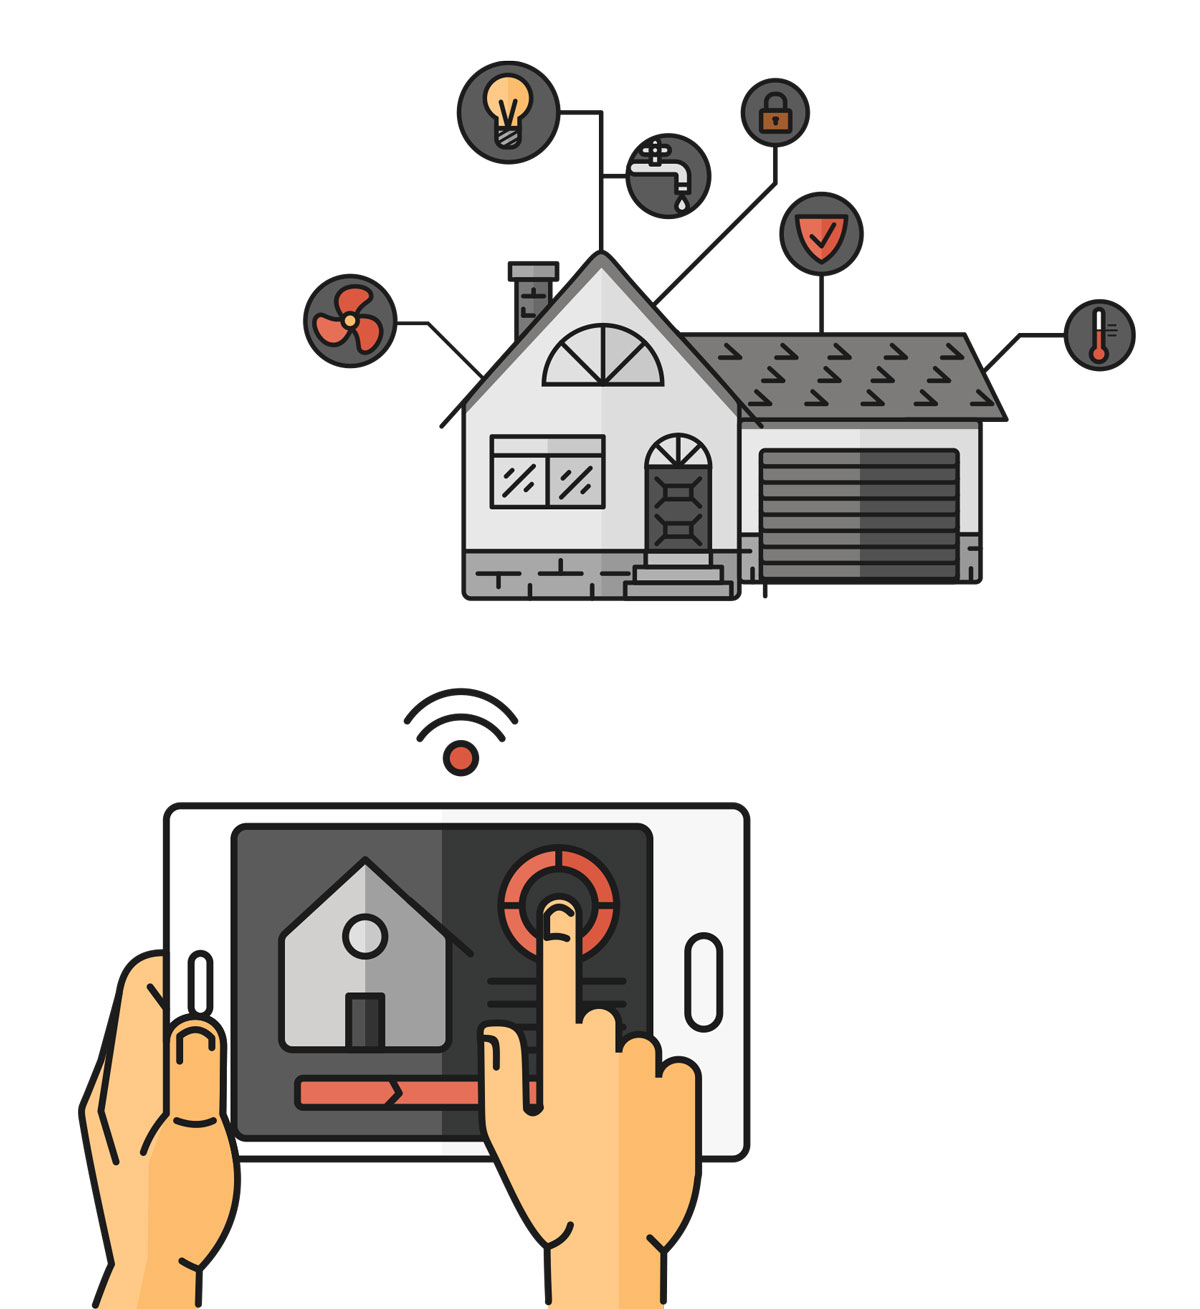 smart-home-illustration.jpg